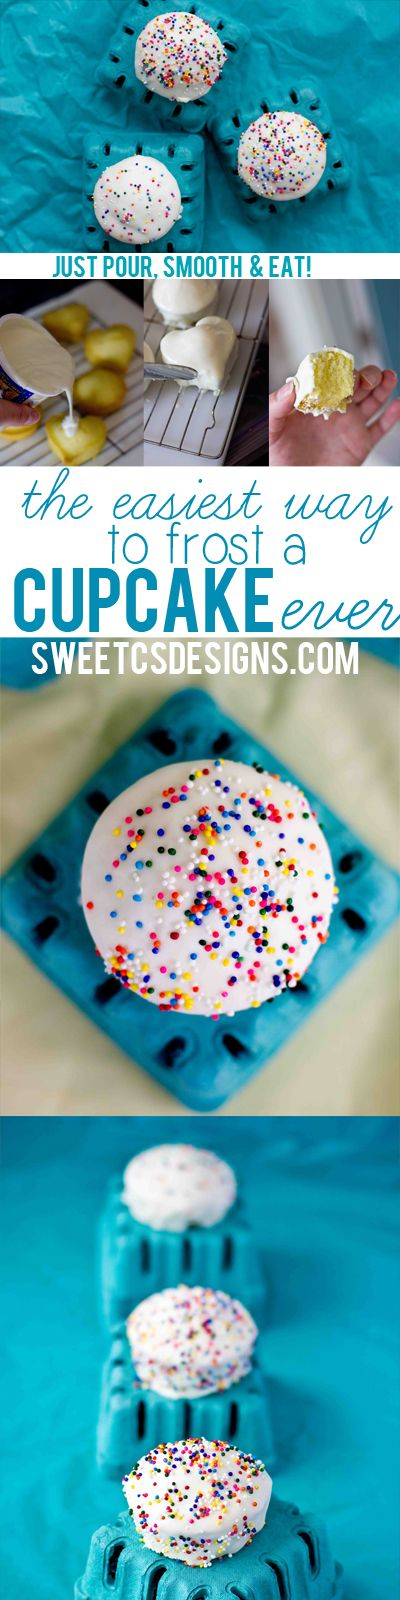 DIY The Easiest Way to Frost a Cupcake Ever